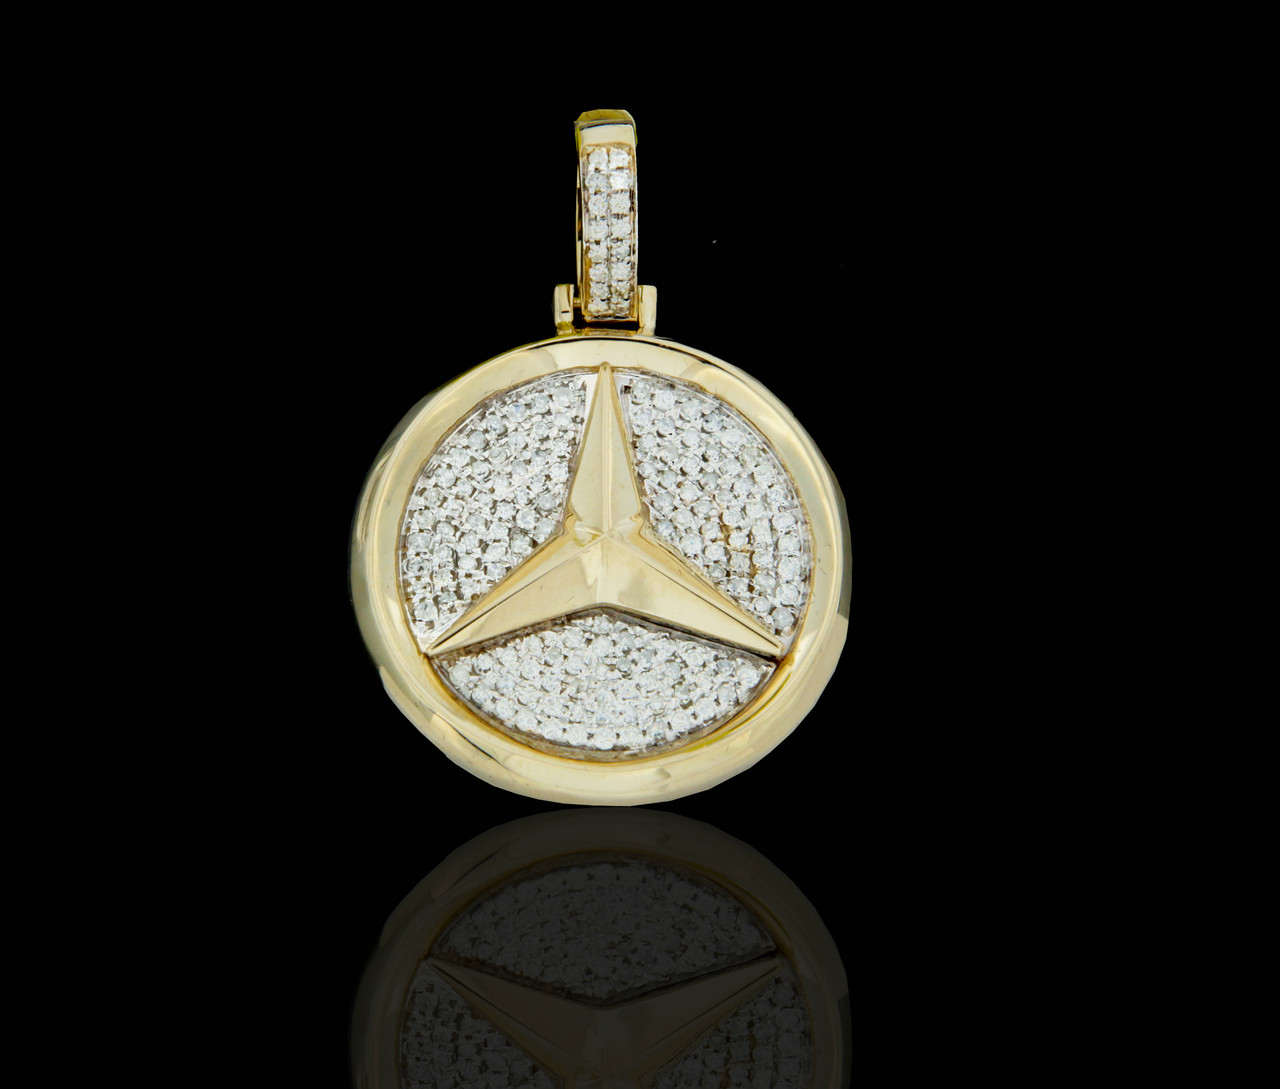 10k gold diamonds mercedes benz pendant king for Mercedes benz pendant